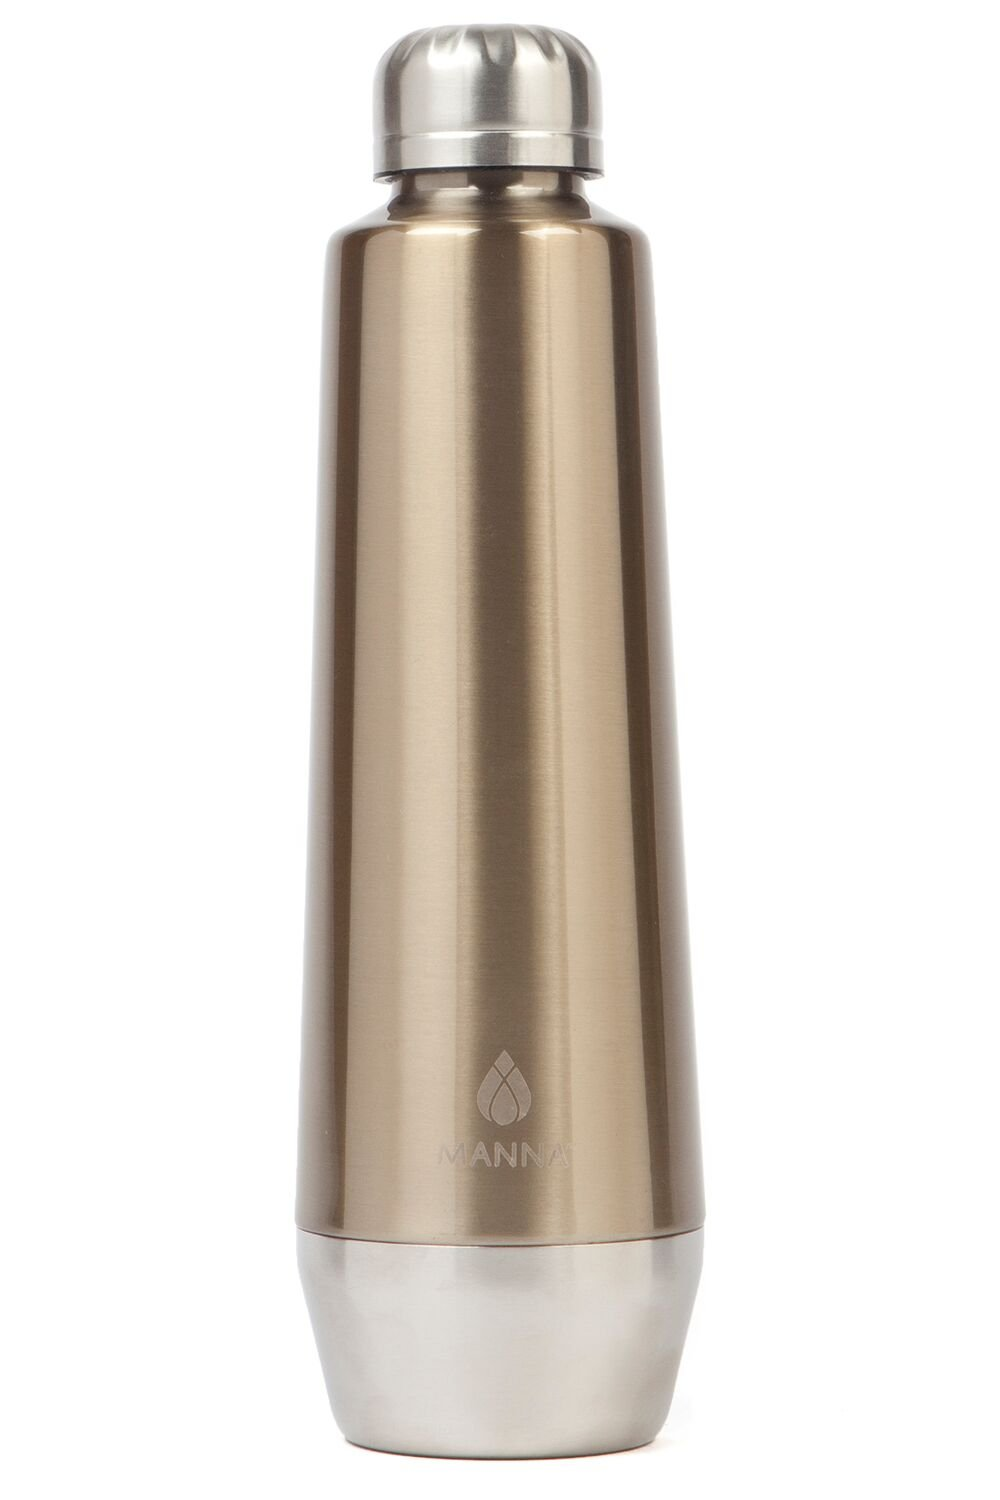 Manna Moda Metallic Stainless Steel Double Walled Vacuum Insulated 18 oz Water Bottle | No Sweat | BPA Free | Keeps Drinks Hot 12 Hours & Cold 24 Hours | For Office, Home or Camping - Gold